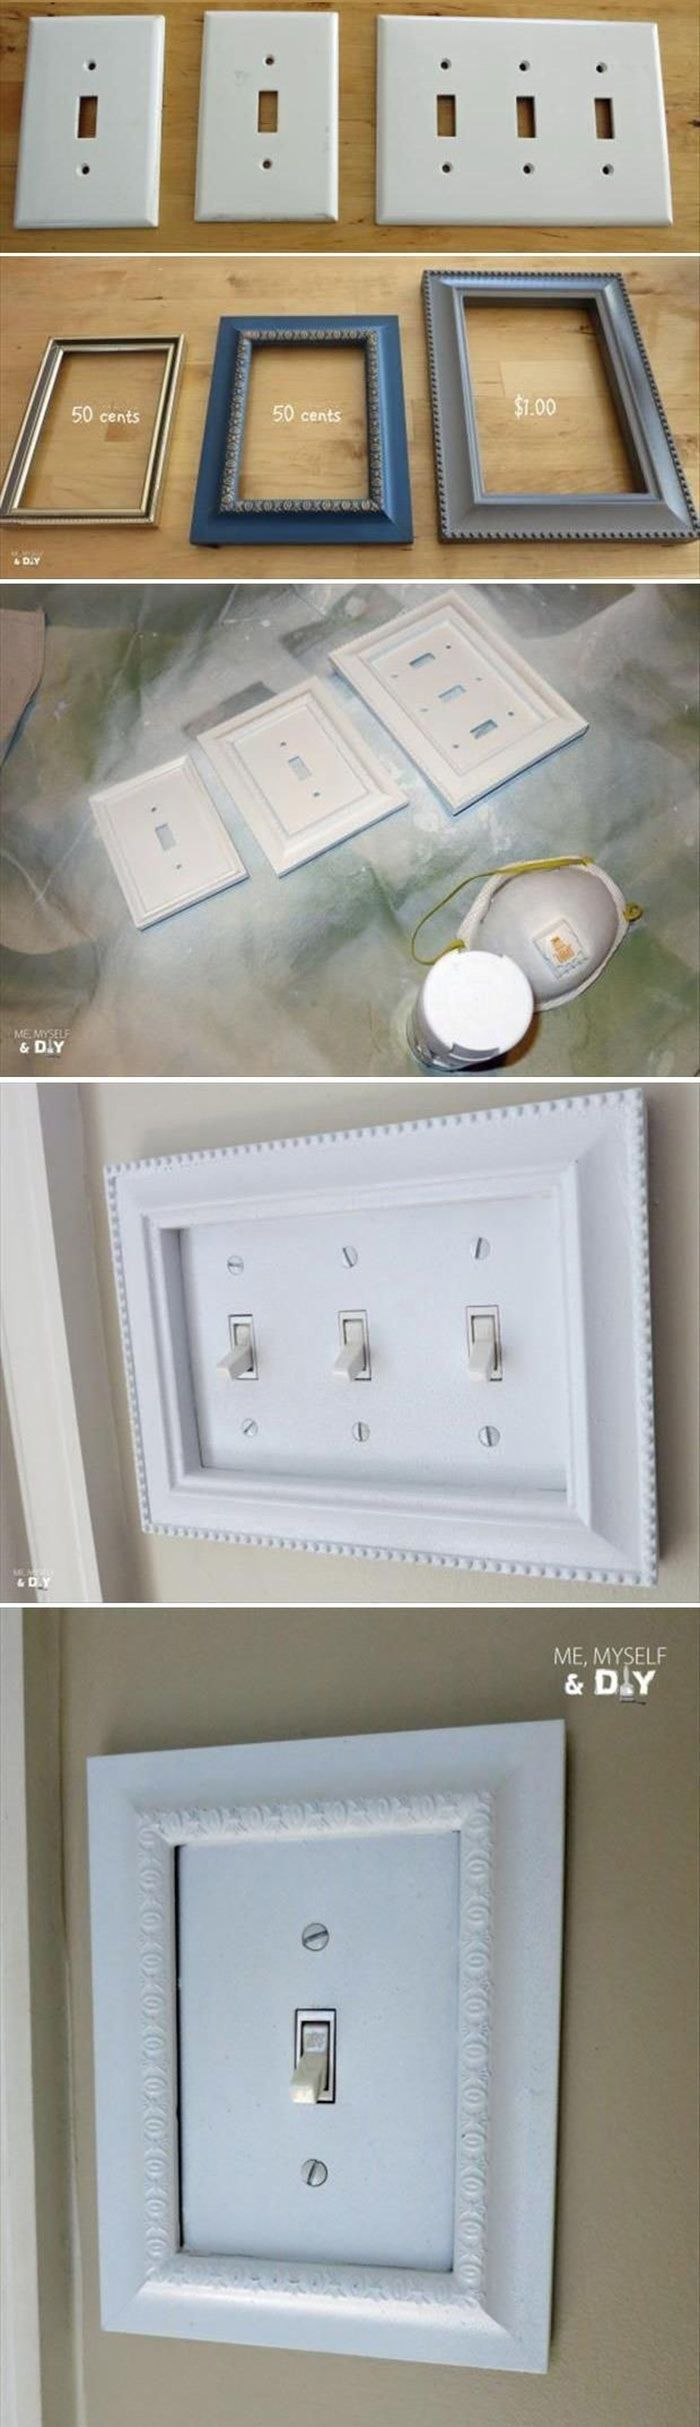 awesome 26 Inexpensive DIY Upgrades That Will Add A Touch Of Class To Your Home by http://www.danaz-home-decorations.xyz/home-improvement/26-inexpensive-diy-upgrades-that-will-add-a-touch-of-class-to-your-home/